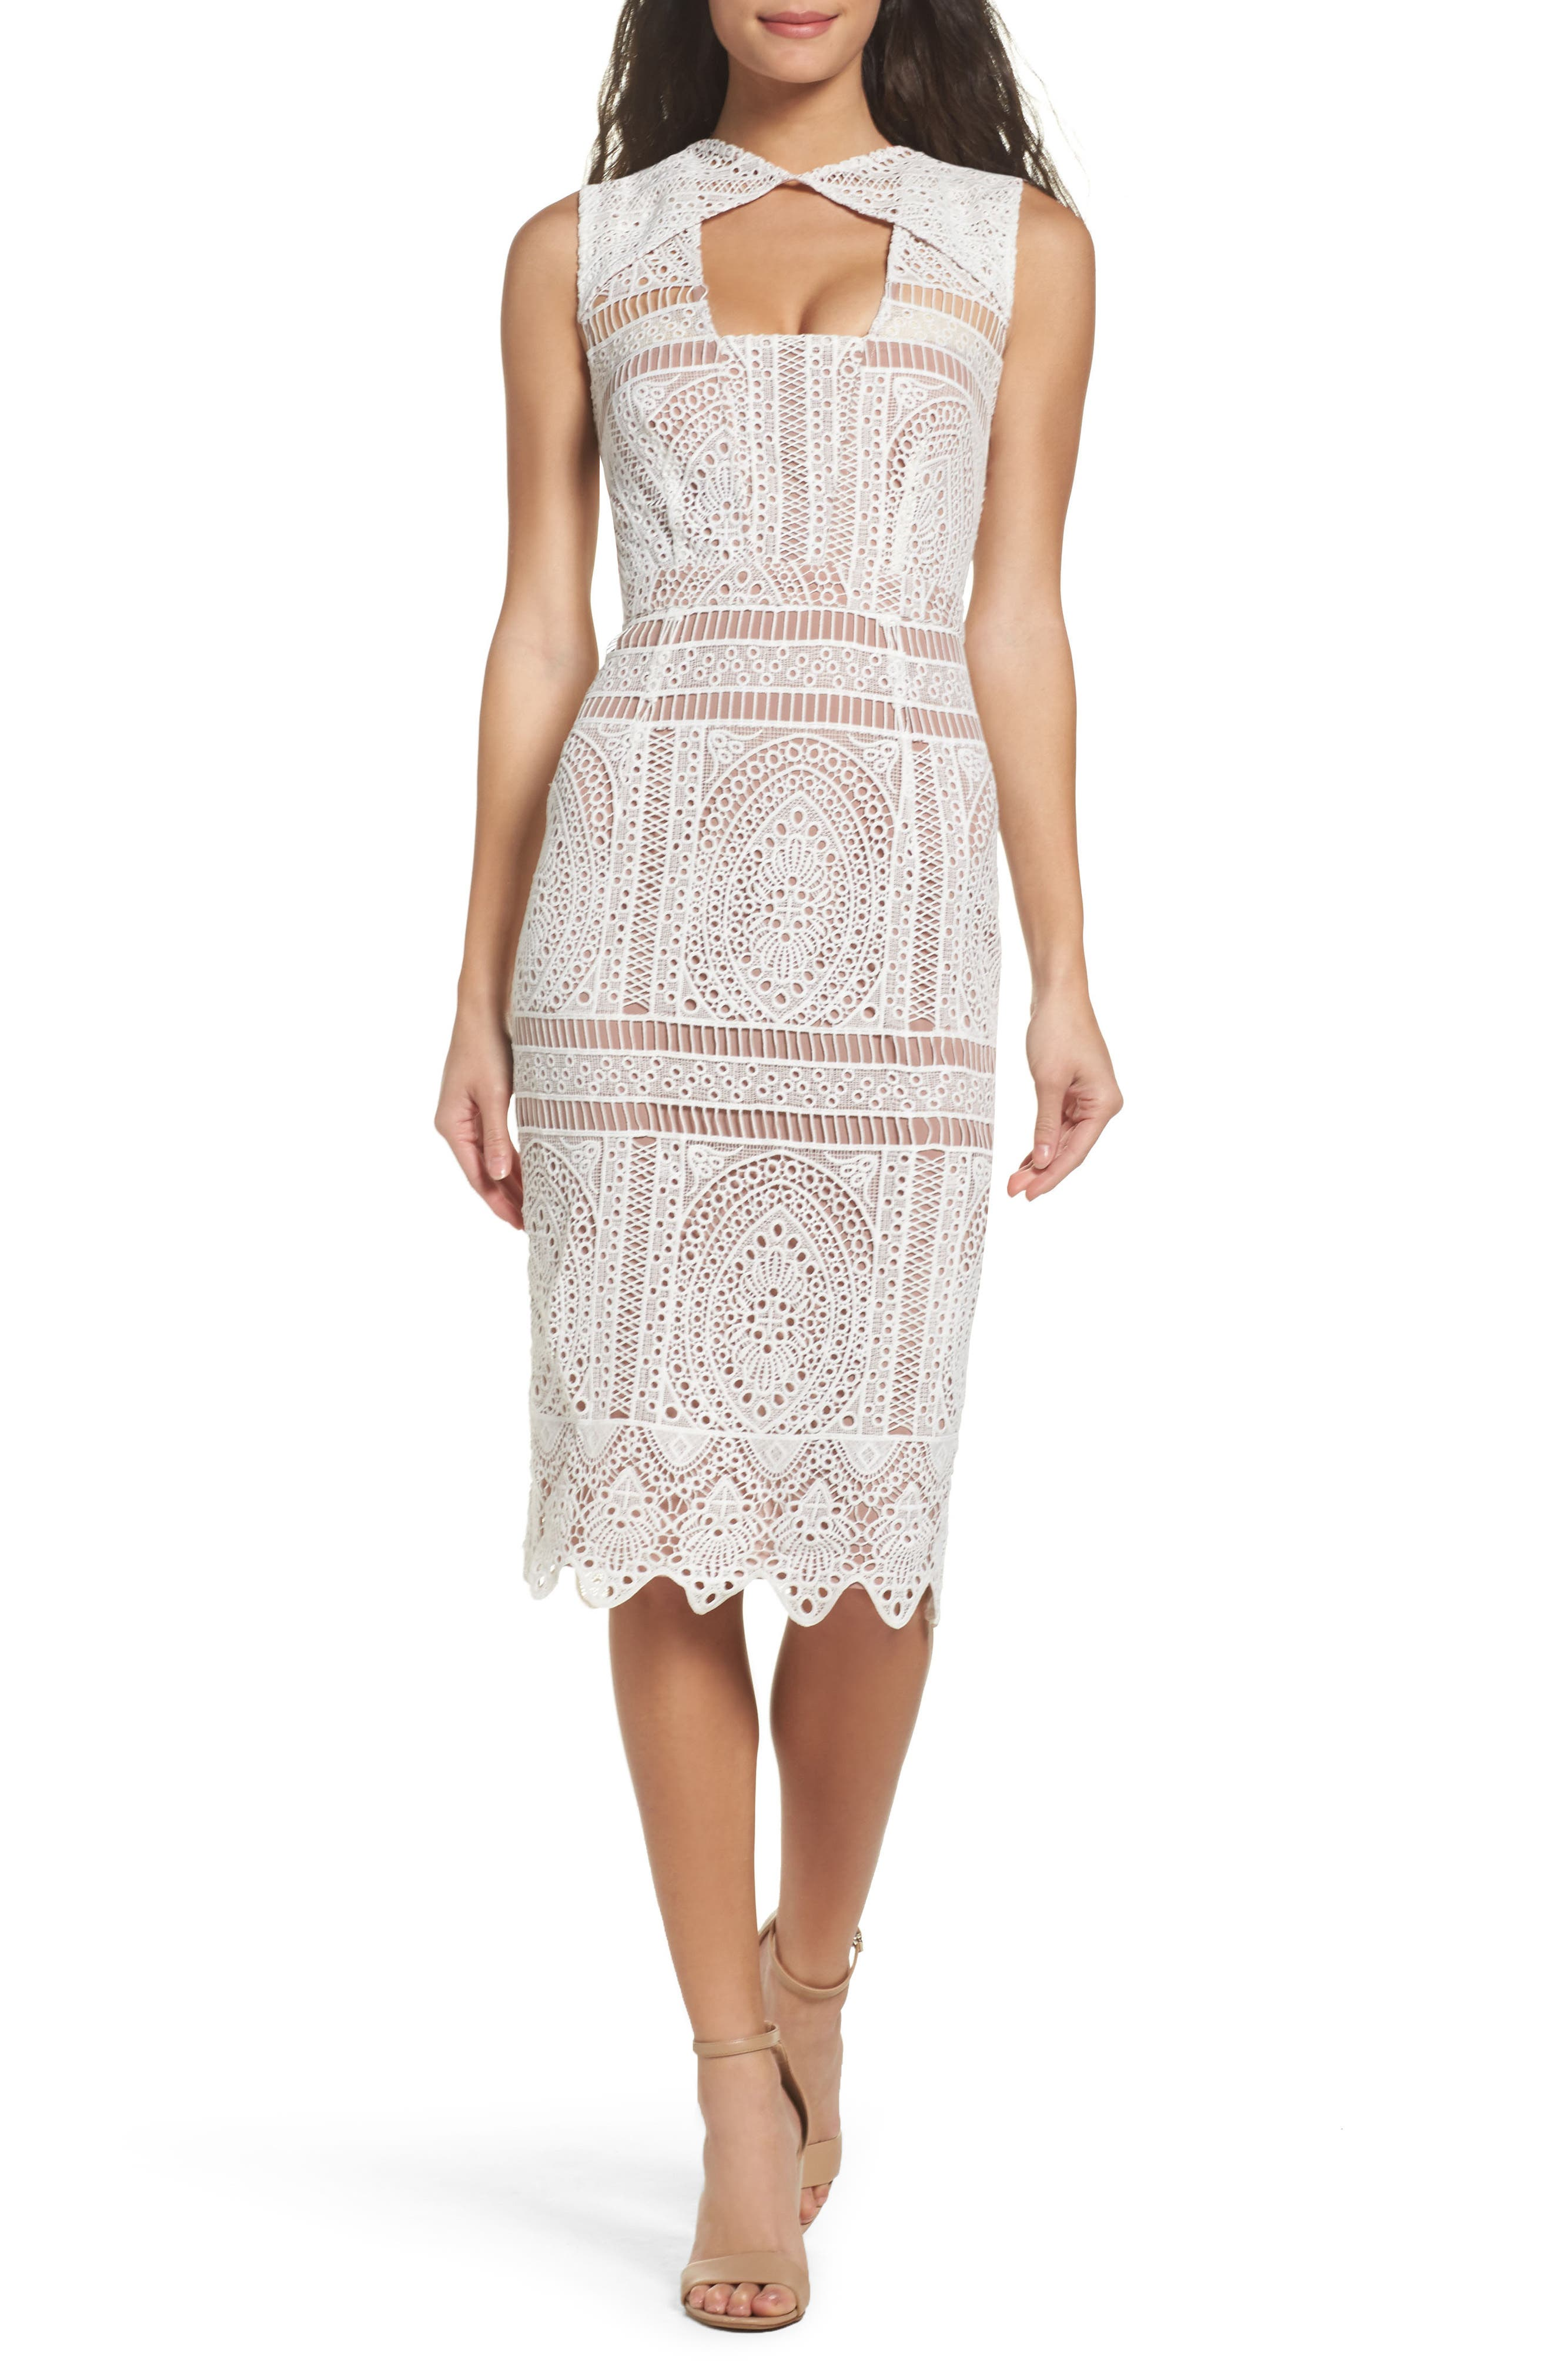 Cooper St The Last Hurrah Sheath Dress